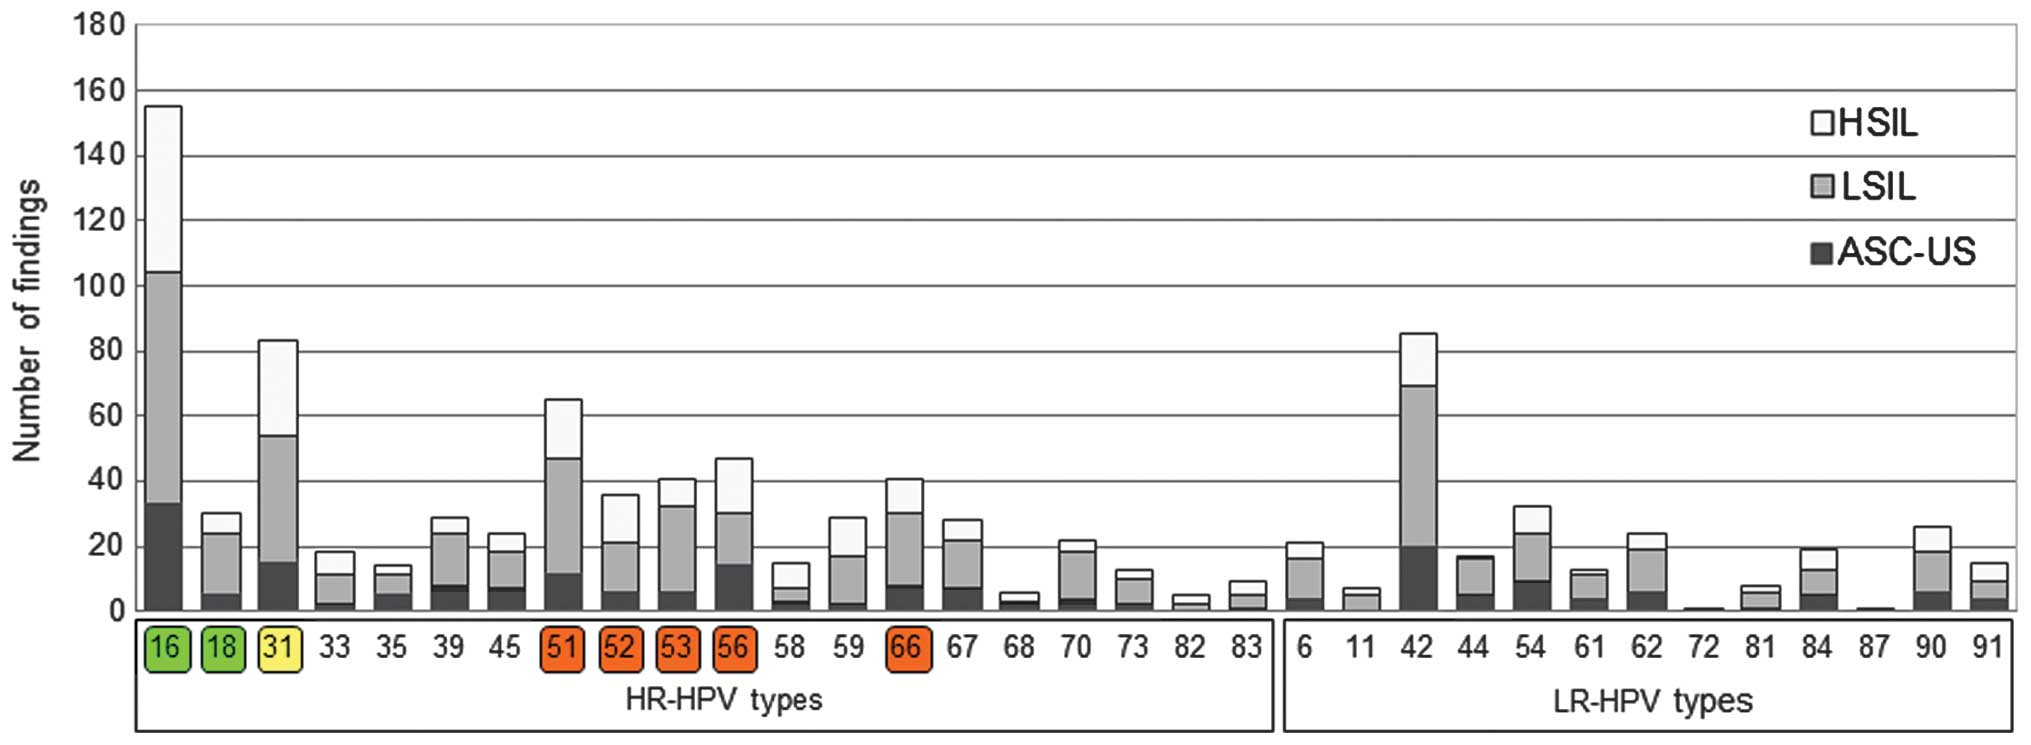 herpes labial papiloma humano human papillomavirus identification in breast cancer patients with previous cervical neoplasia